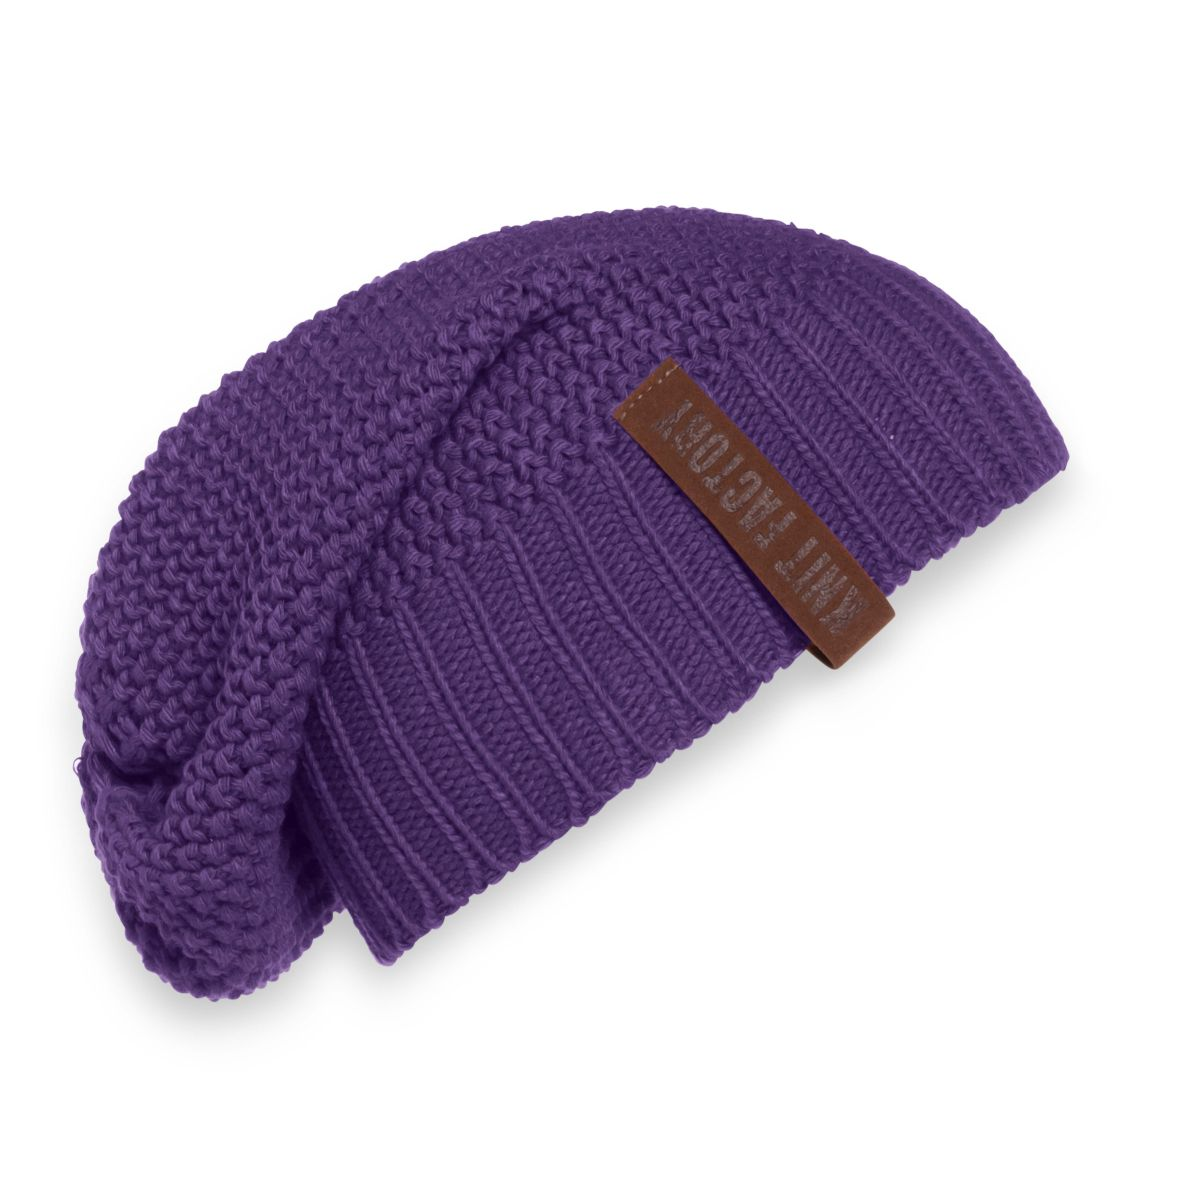 knit factory kf12007012350 coco beanie violet 1